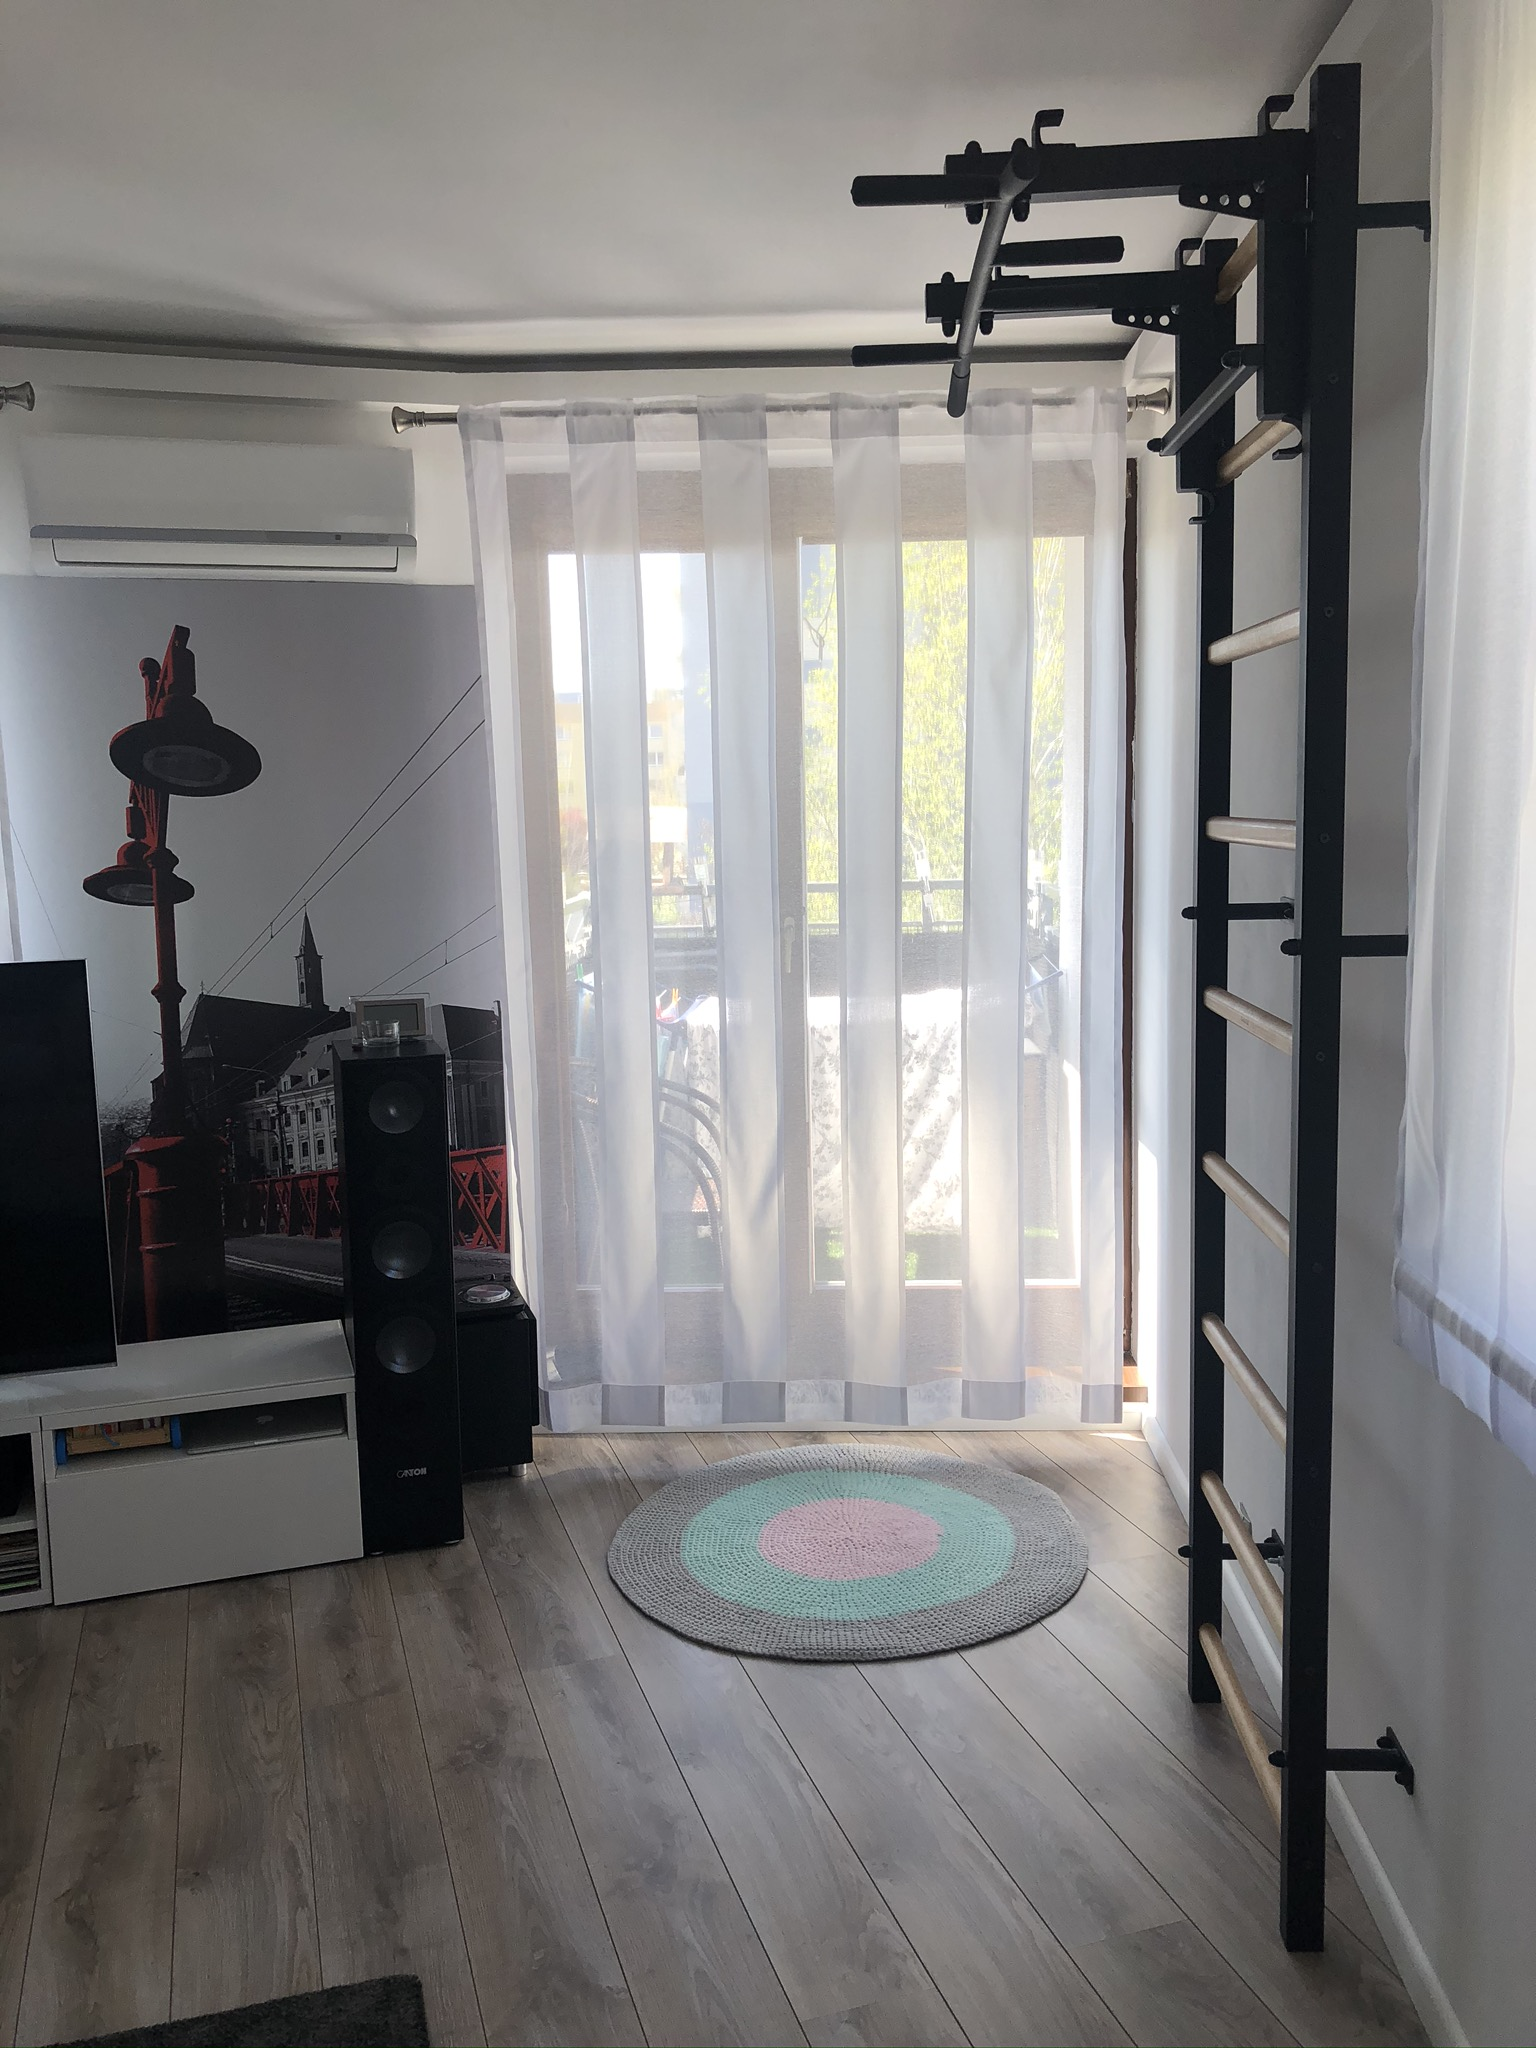 Wall bars in the living room